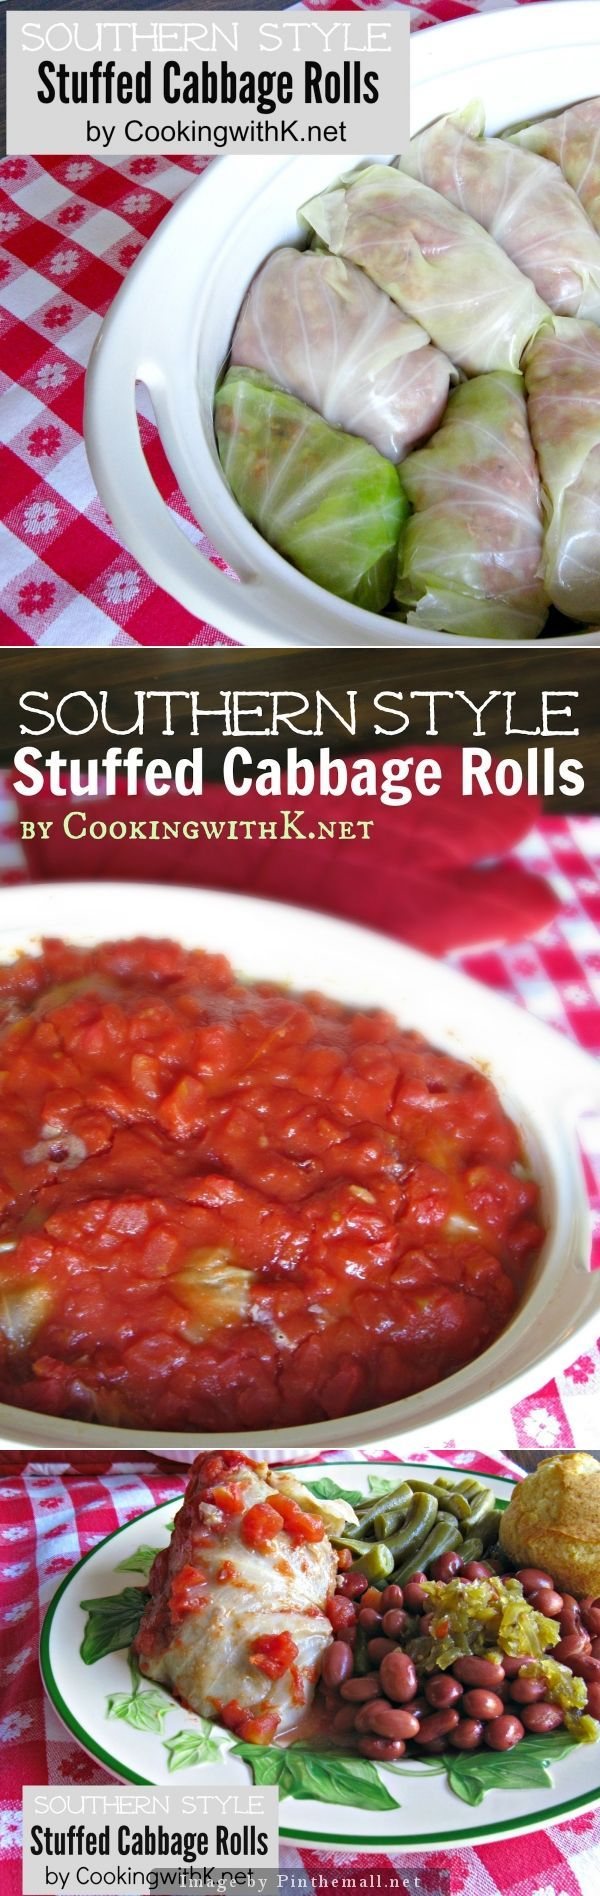 Southern Style Cabbage Rolls {Granny's Recipe} | An old fashioned recipe made with hamburger, rice, onions, and covered in a ketchup diced tomato sauce. | CookingwithK.net